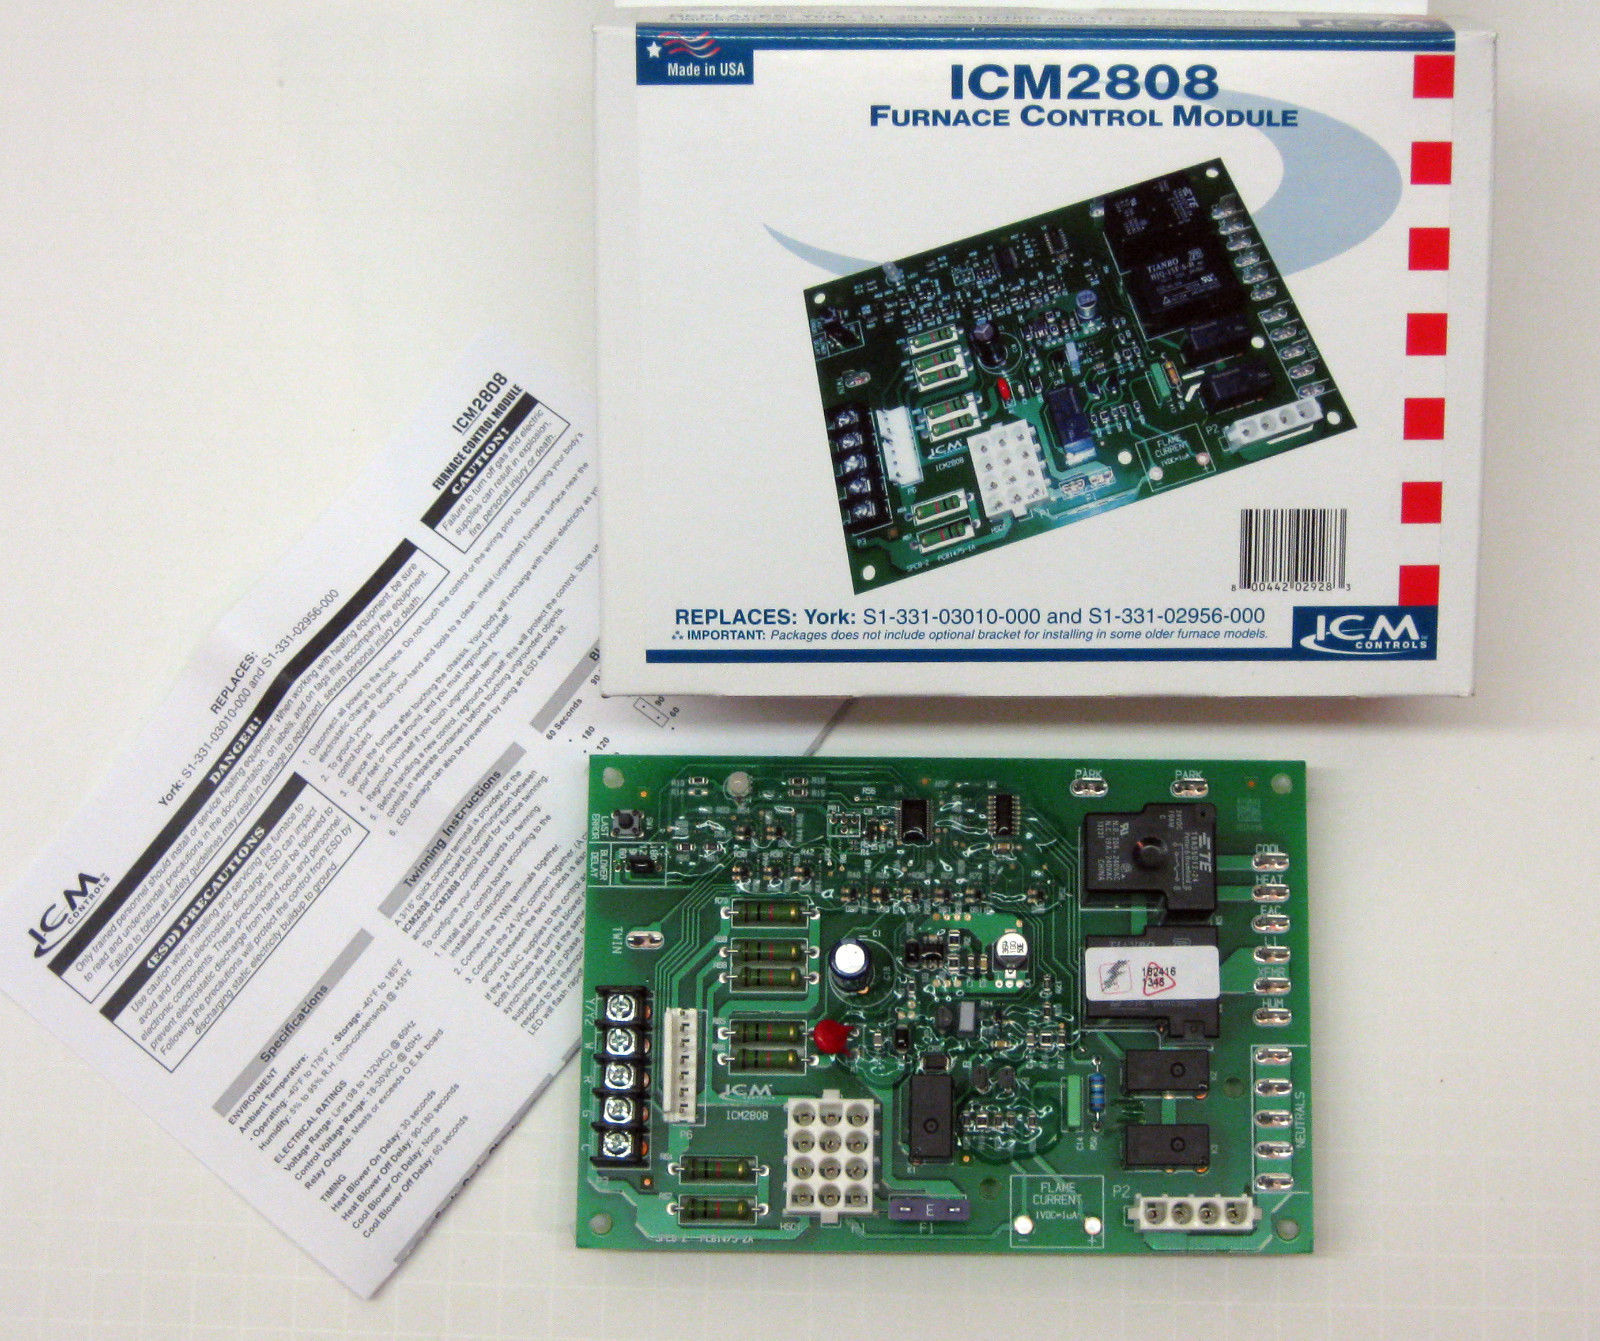 Icm2808 Icm Furnace Control Board For York S1 331 03010000